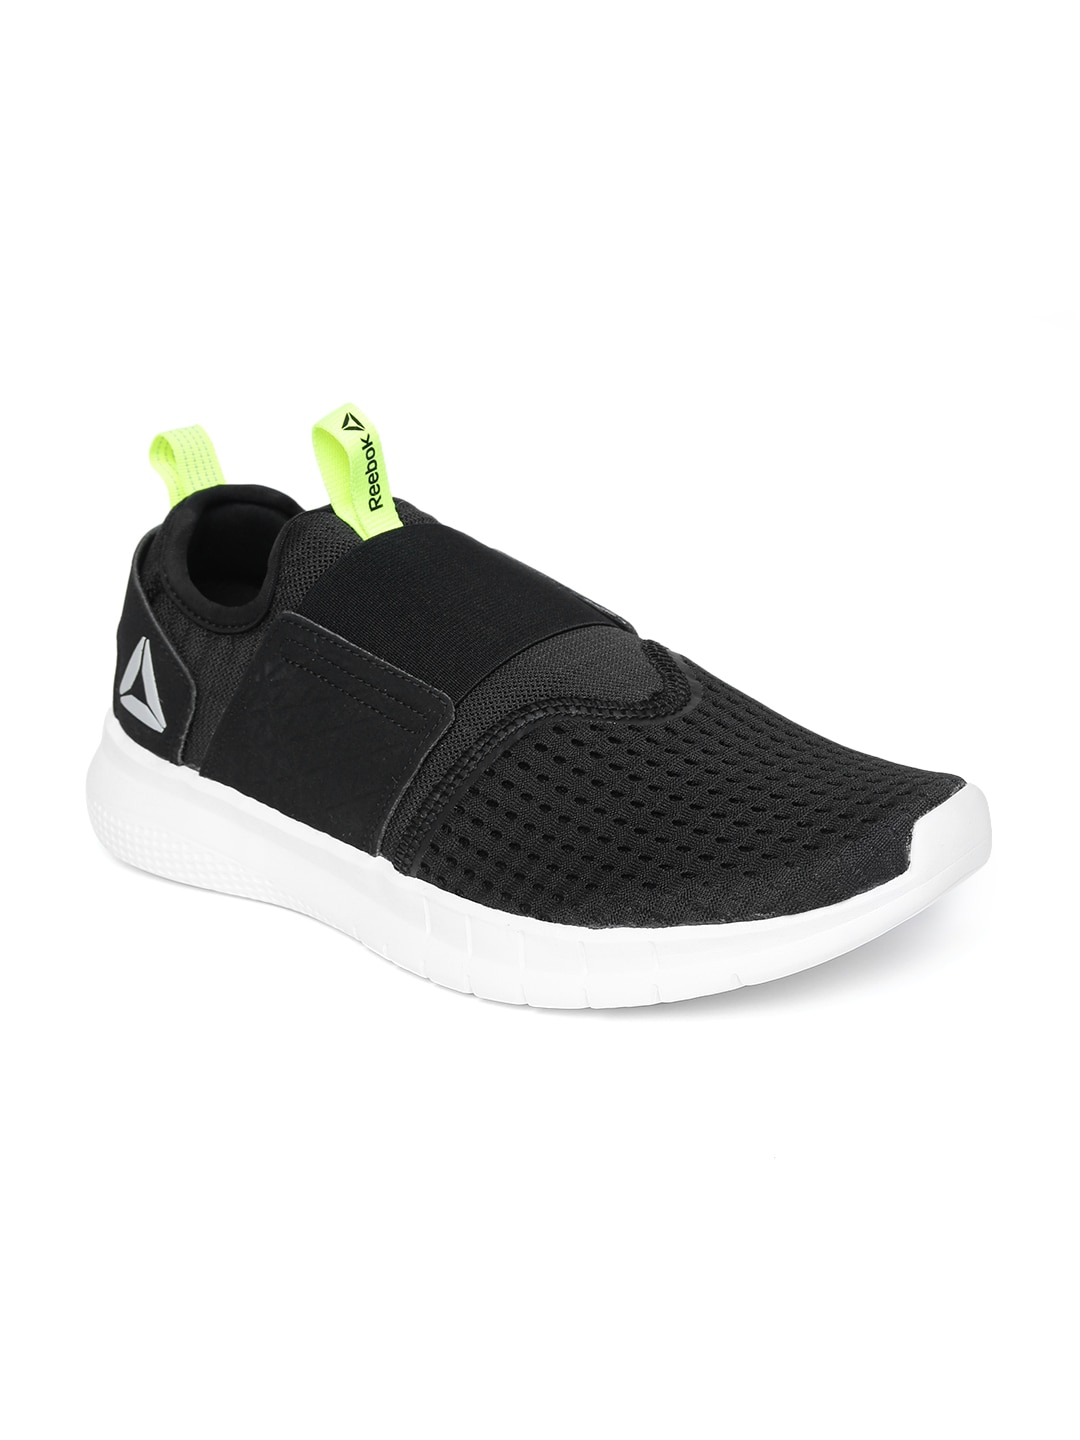 9e03af654a5018 Reebok Sports Footwear - Buy Reebok Sports Footwear Online in India